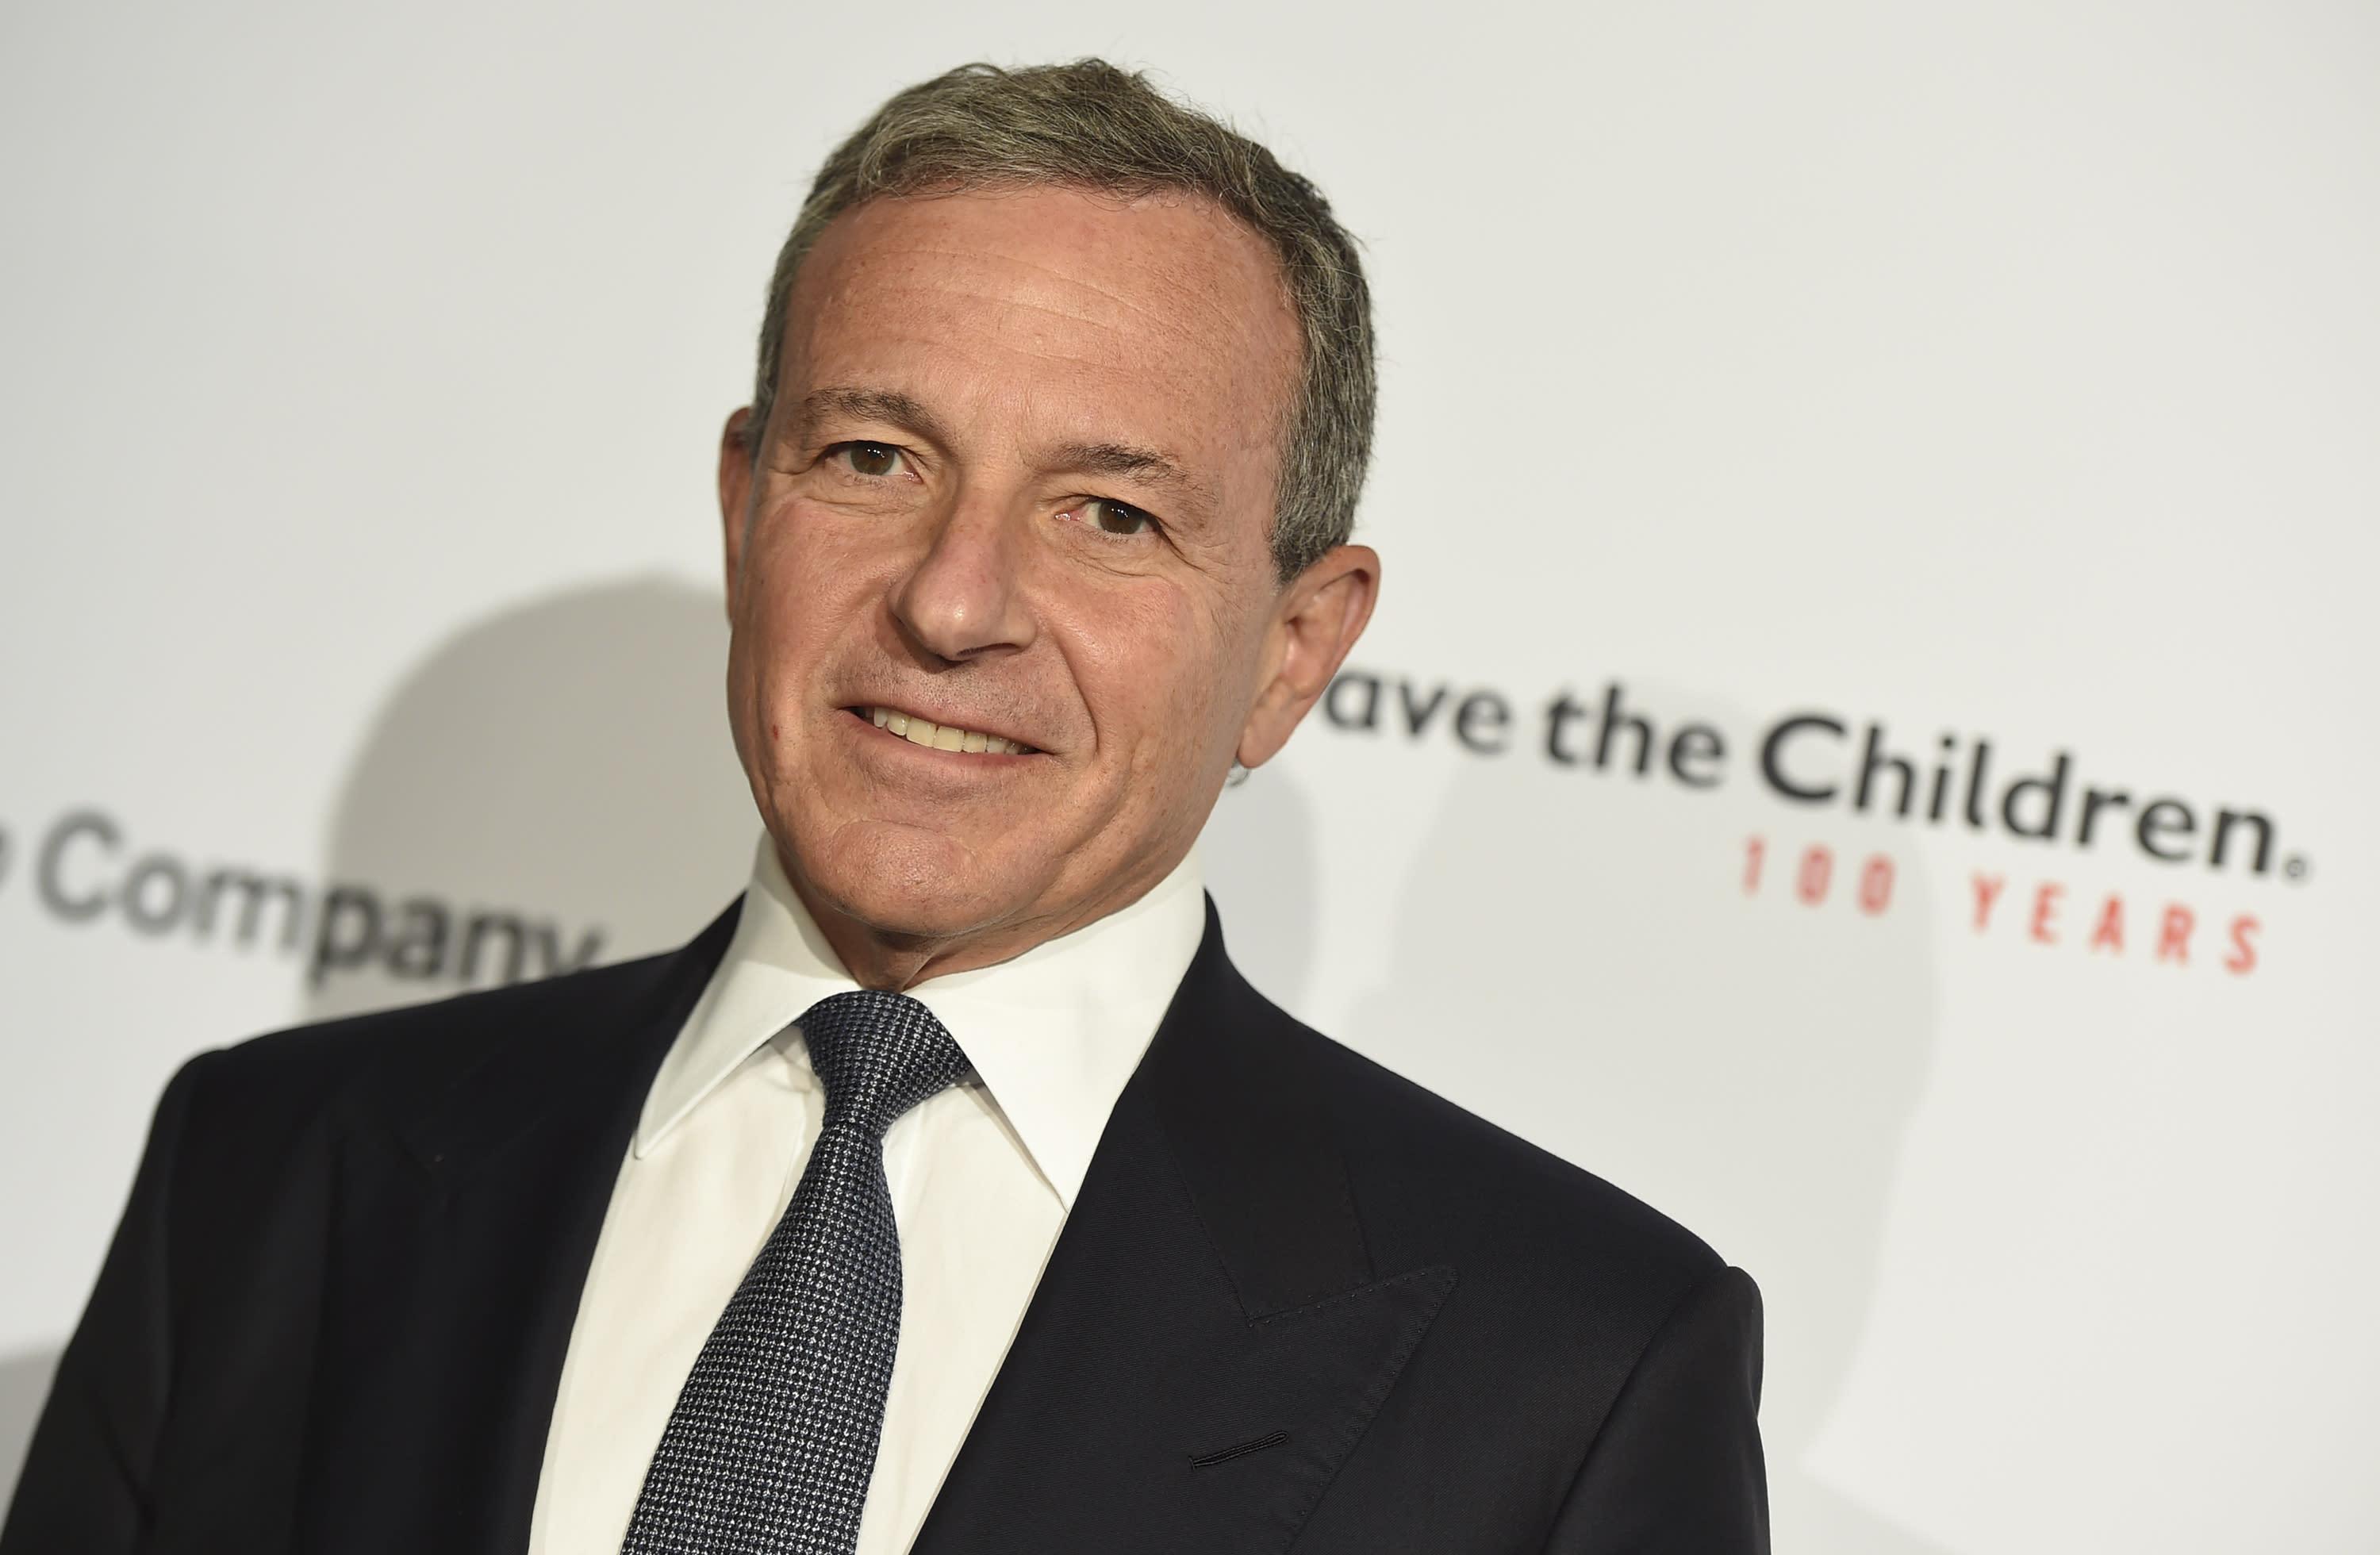 Disney CEO Bob Iger named most powerful man in Hollywood